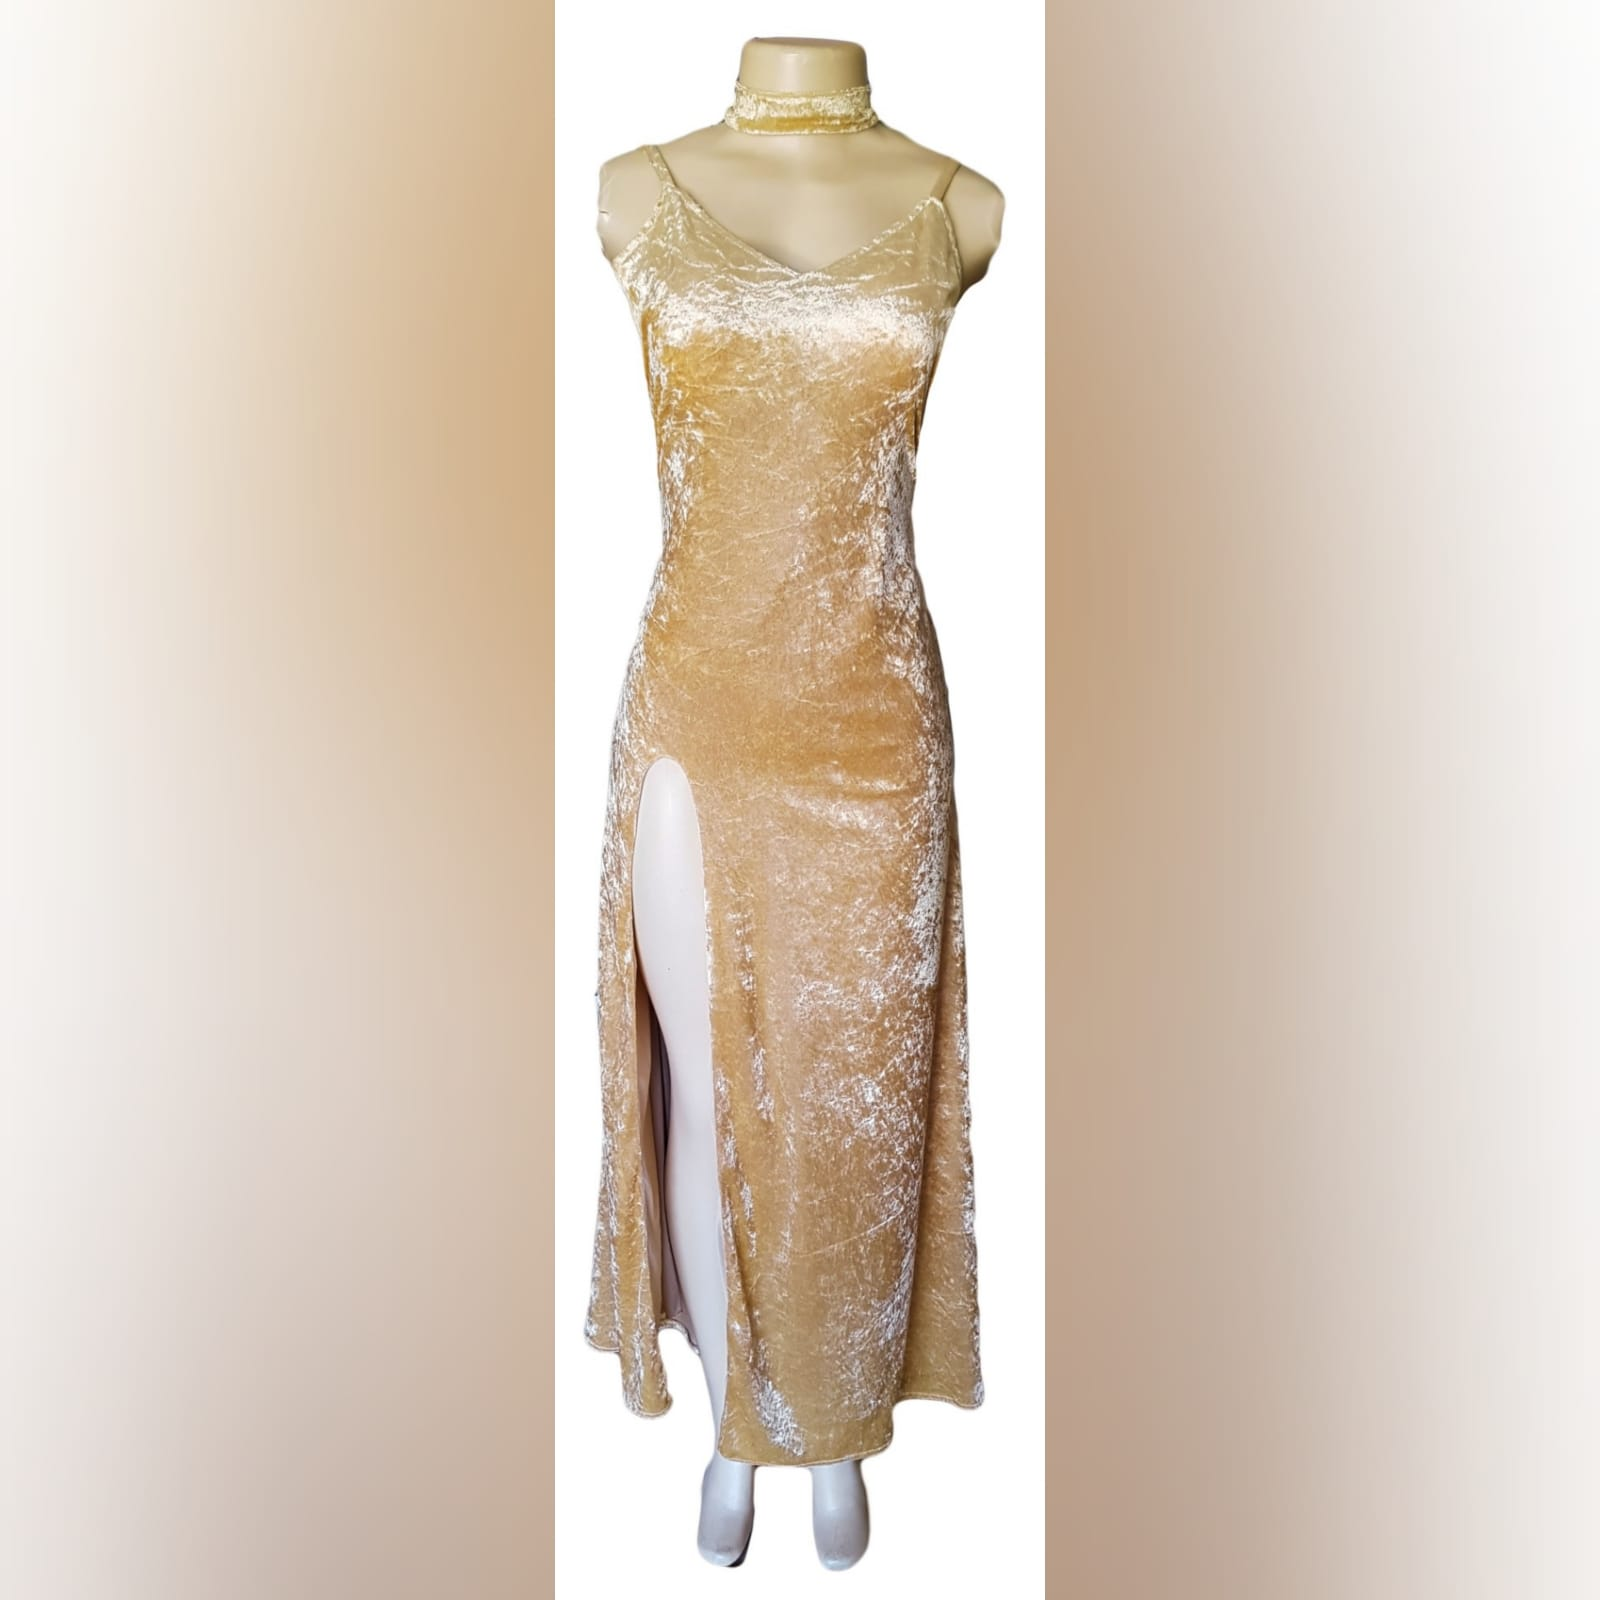 Champagne velvet long prom dress 2 champagne velvet long prom dress with a v neckline, rounded backless design with a high slit and a matching choker.